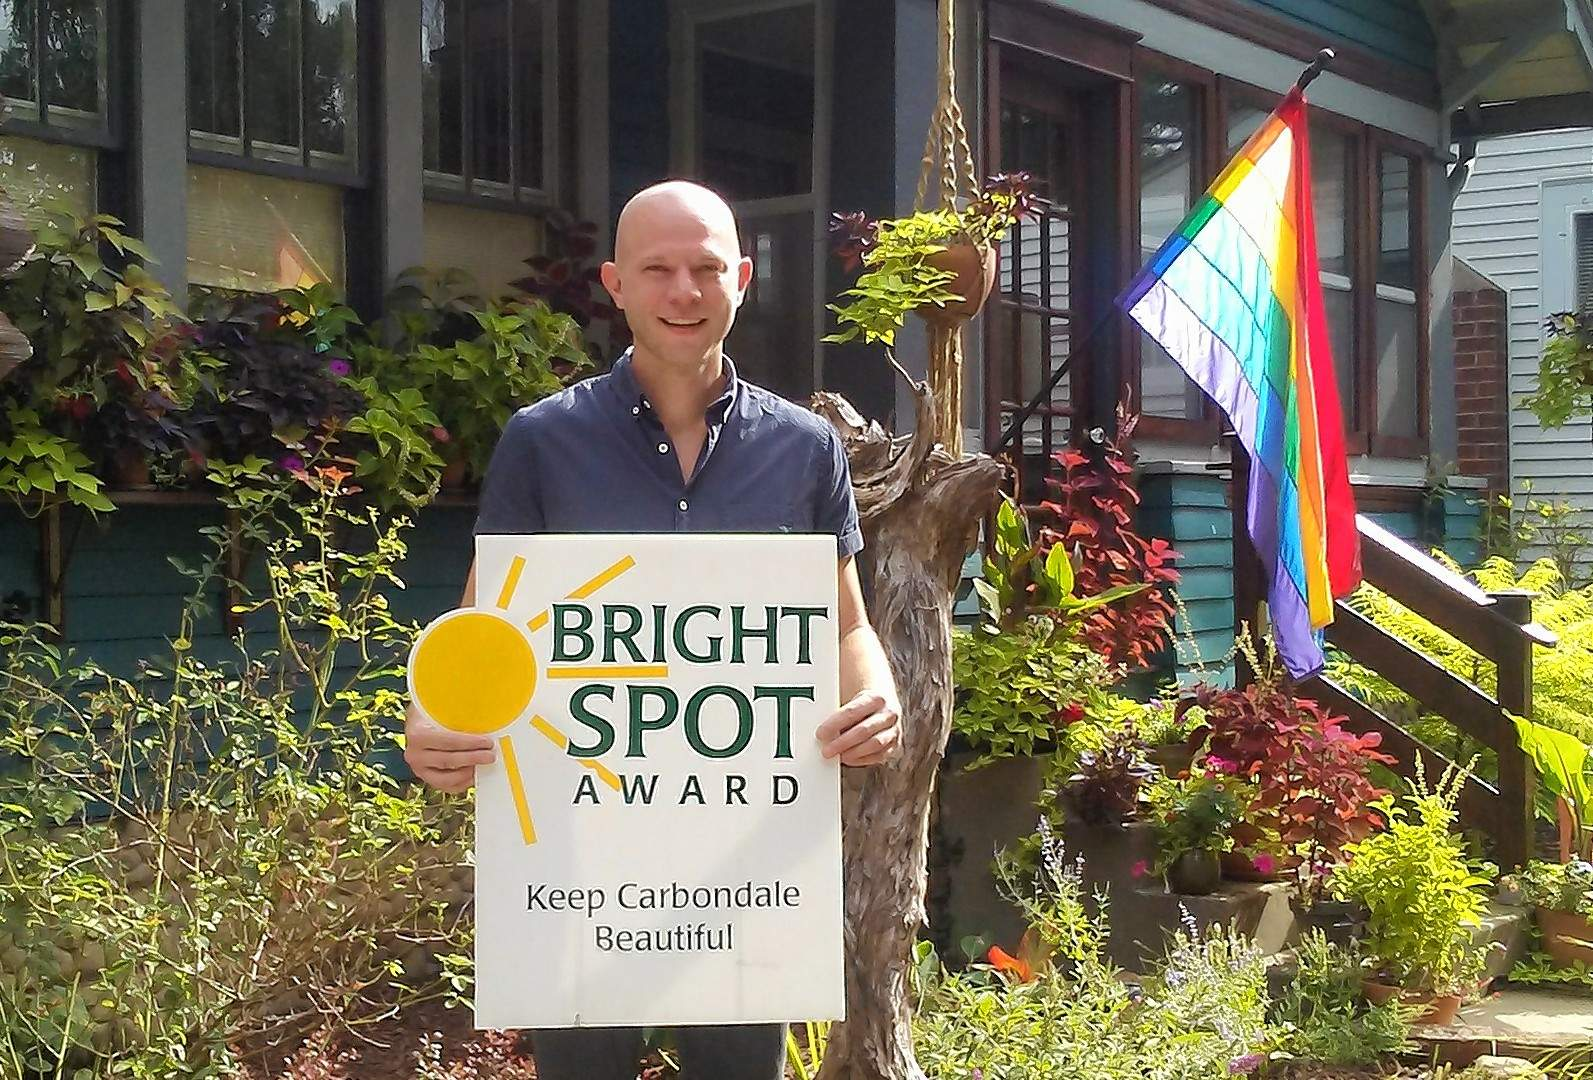 Darren Ackerman is the most recent winner of Keep Carbondale Beautiful's Bright Spot Award.